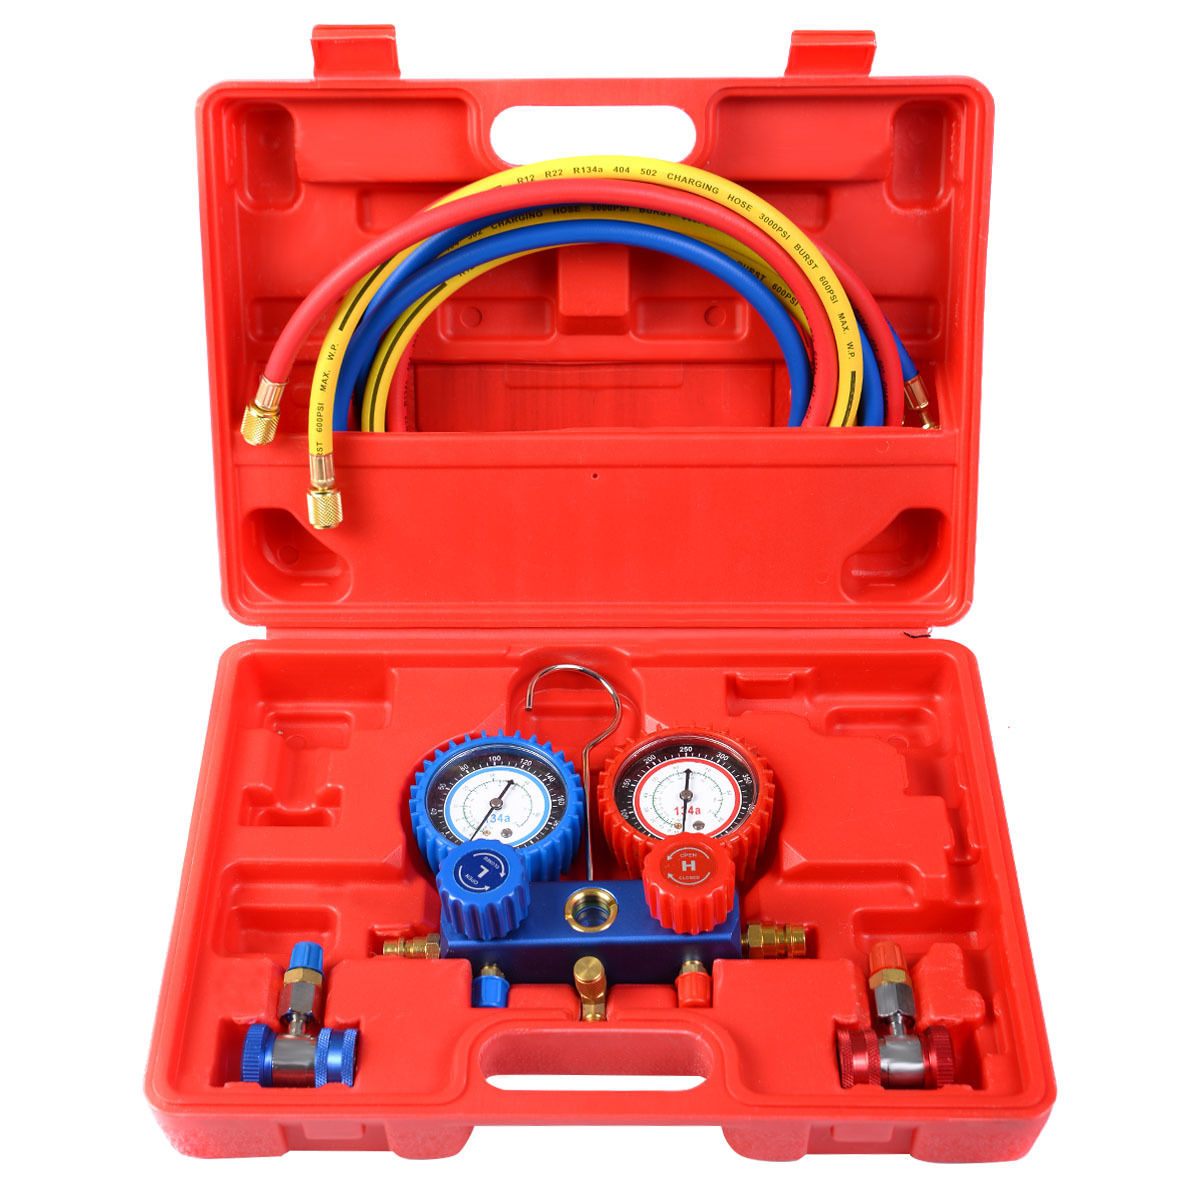 R134A Manifold Gauge Set AC A/C 6FT Colored Hose Air Conditioner w/ Case AT4307